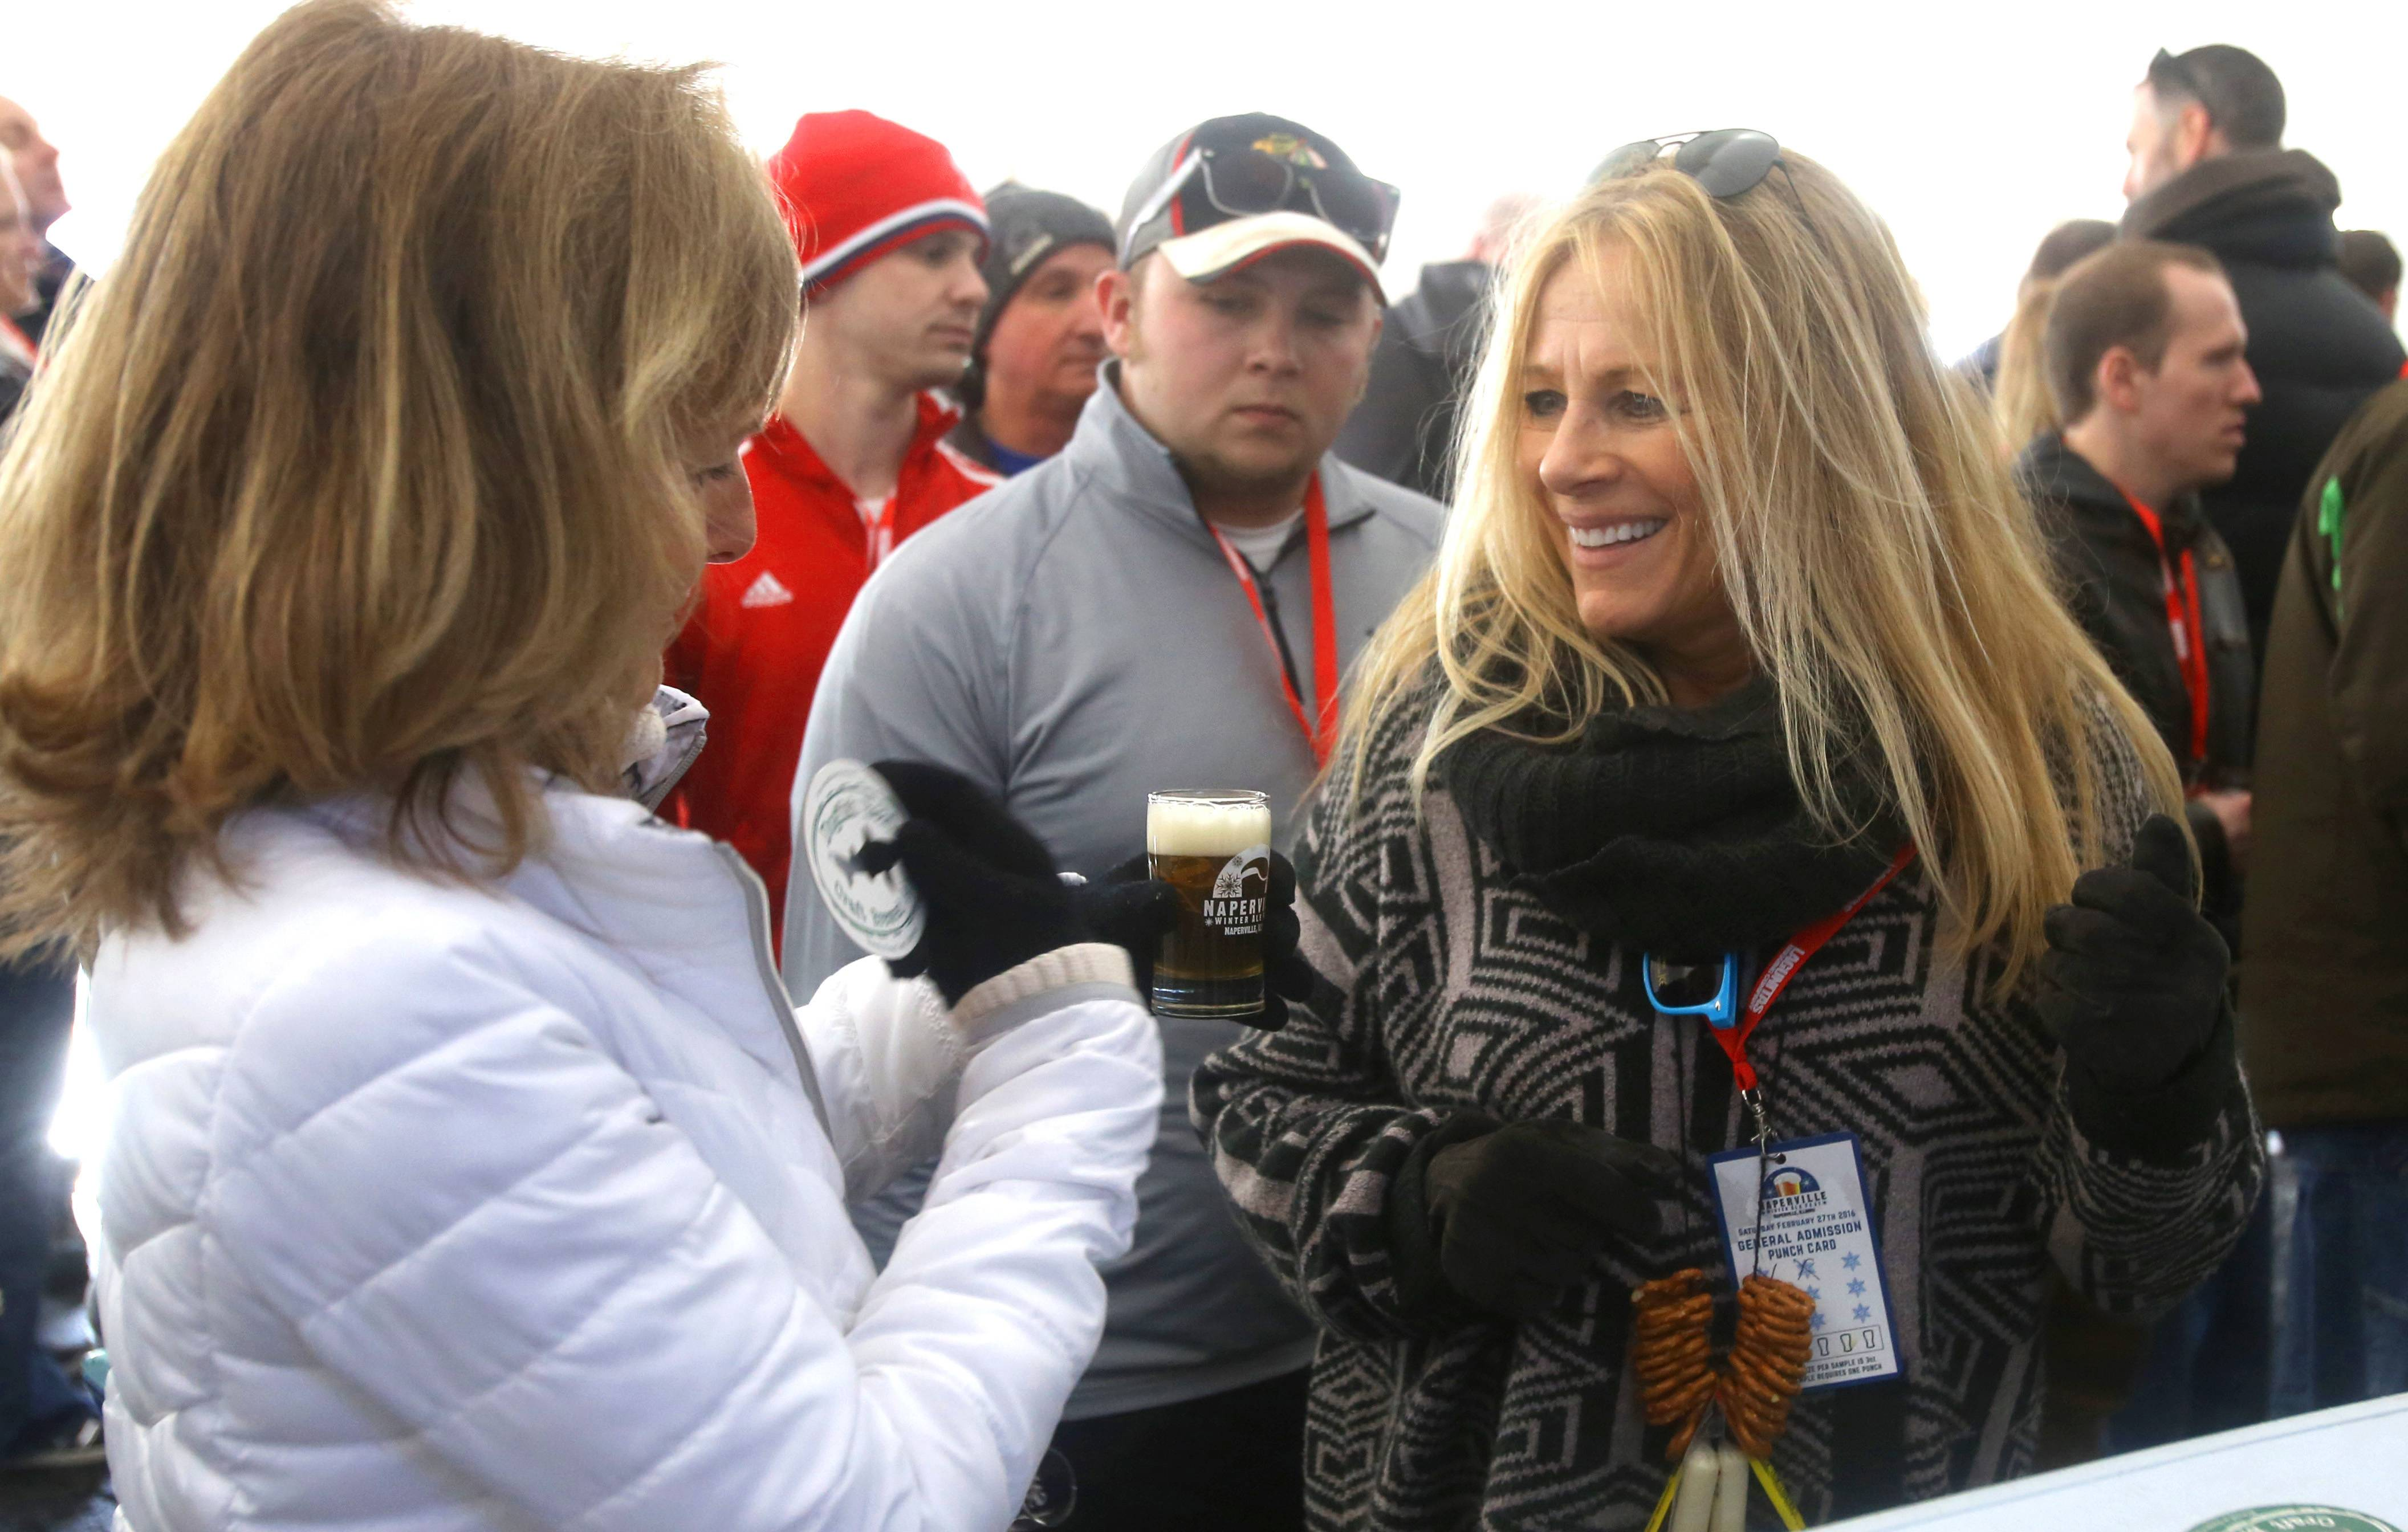 Judy Schaller, left, and Kathy Fritz, right, both of Naperville, wait in line for a craft beer during the third annual Naperville Winter Ale Fest at Frontier Park.